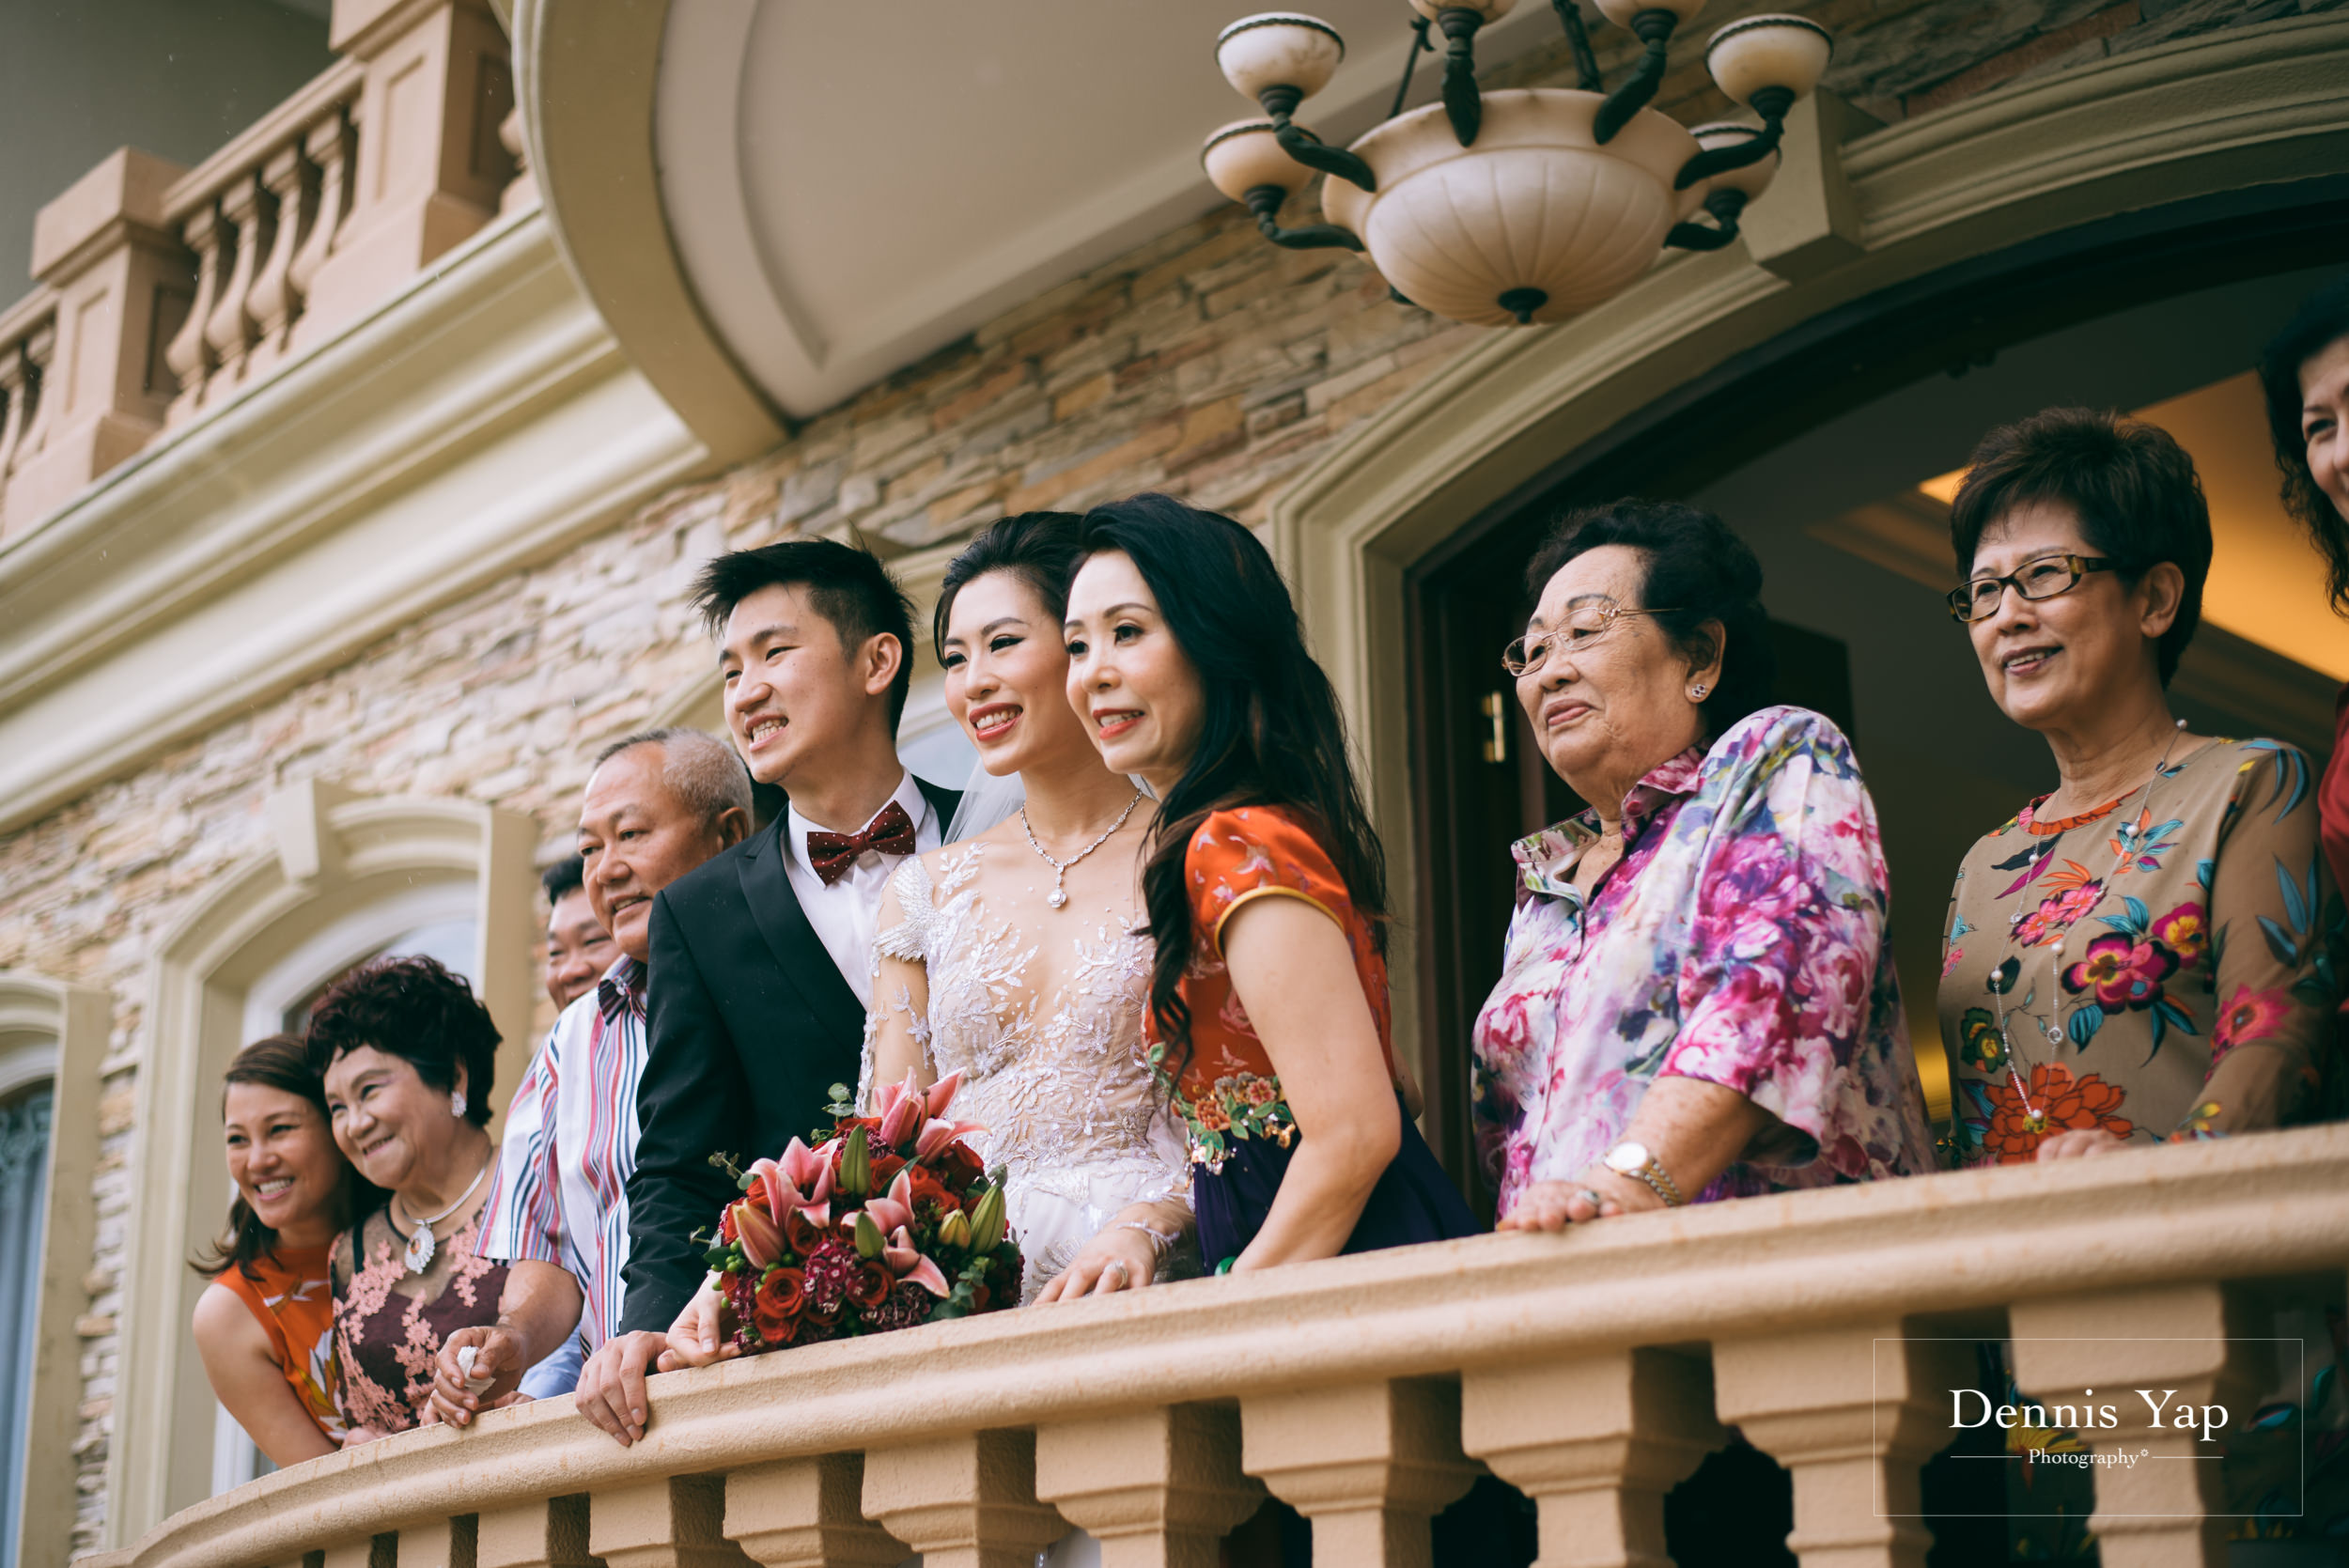 ser siang sze liang wedding day crazy style dennis yap photography malaysia wedding photographer-19.jpg